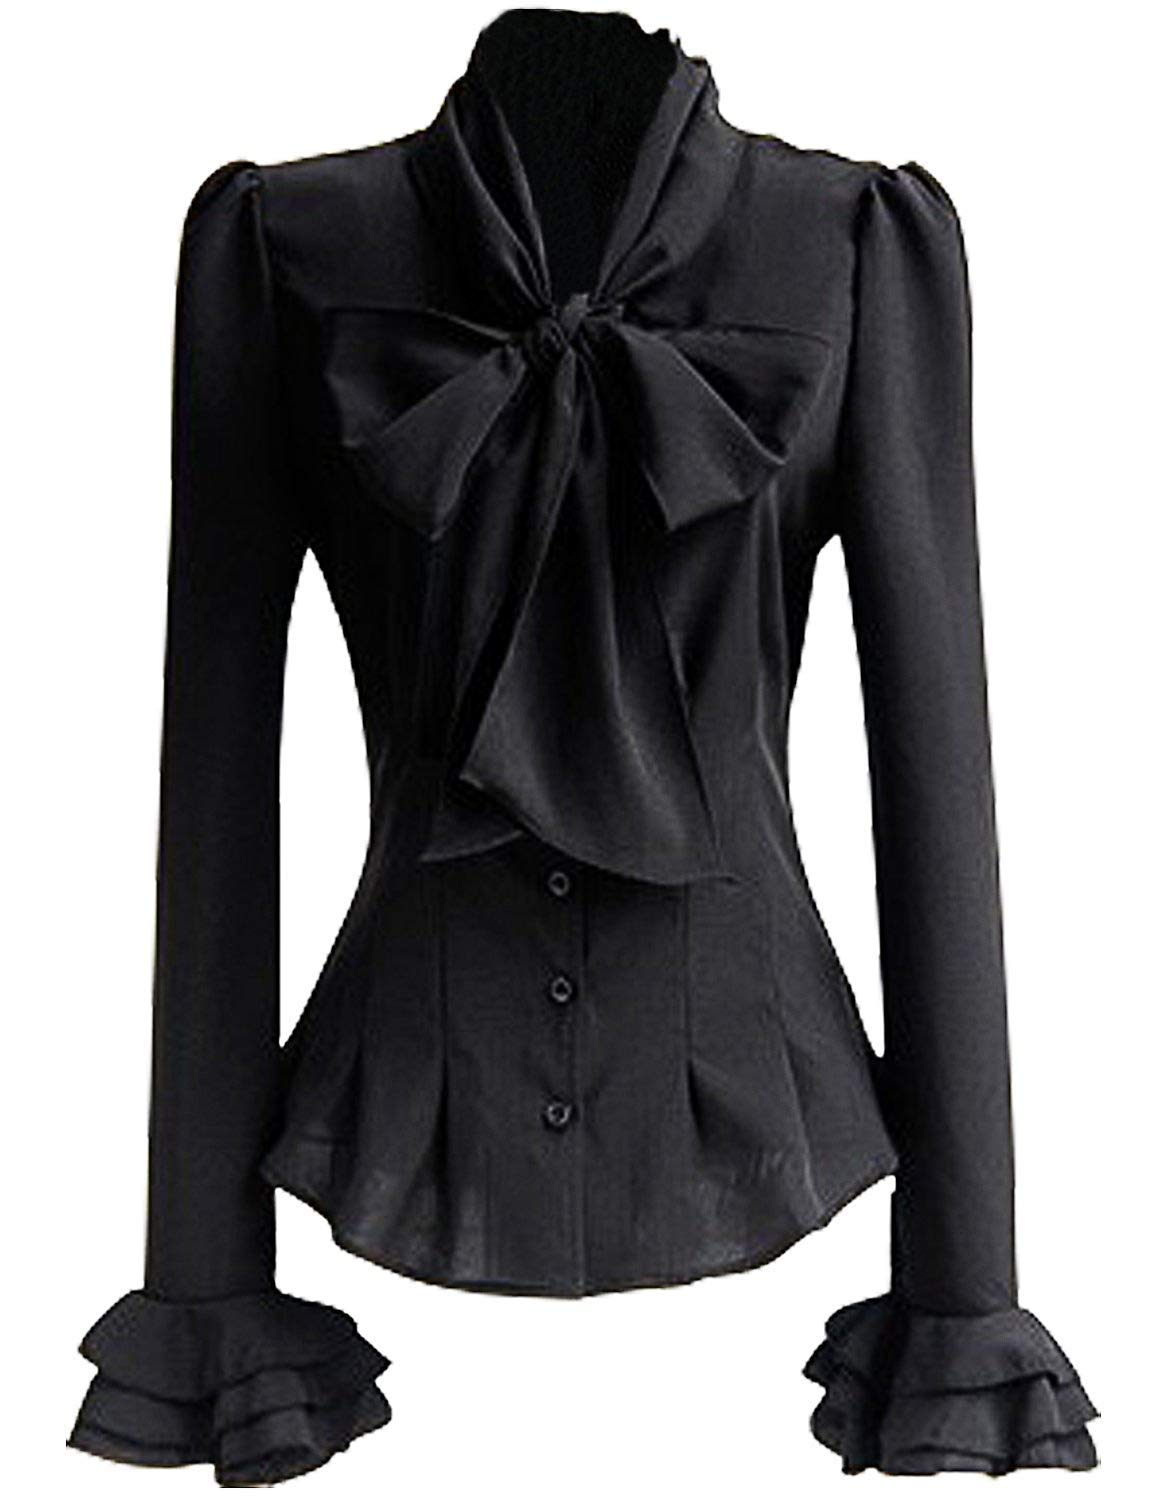 Color Eletina Shirt Women 50s Retro Silky Bow Tie Shirts Ruffle Victoria Blouse Tops and